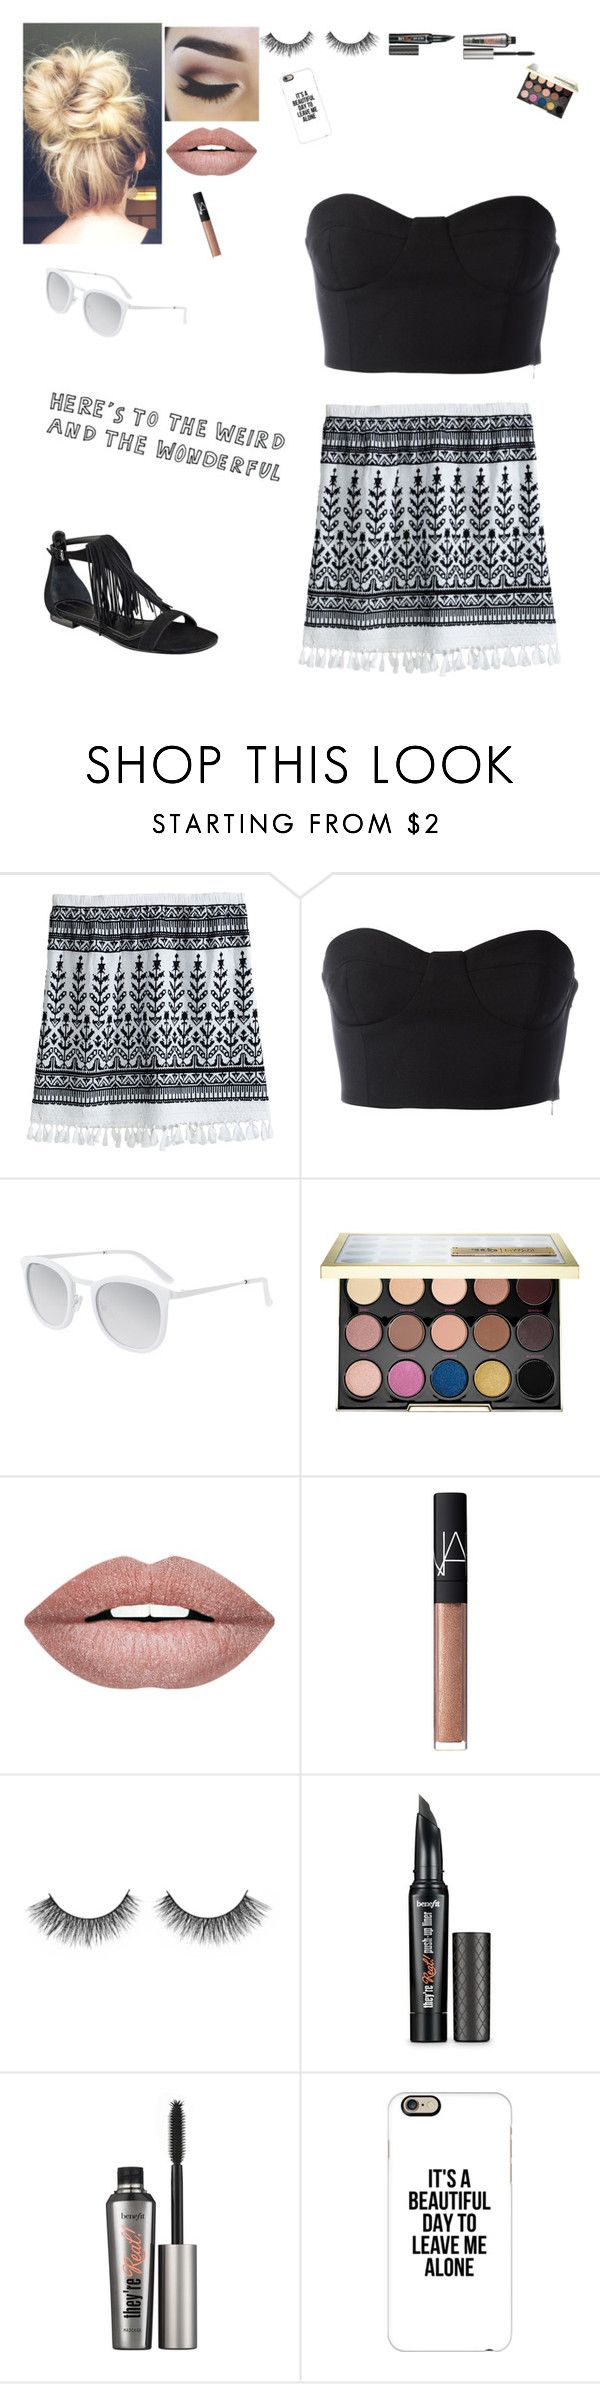 """Untitled #160"" by kat341 ❤ liked on Polyvore featuring Calypso St. Barth, Daizy Shely, Smoke x Mirrors, Urban Decay, Forever 21, NARS Cosmetics, Benefit, Casetify and Kendall + Kylie"